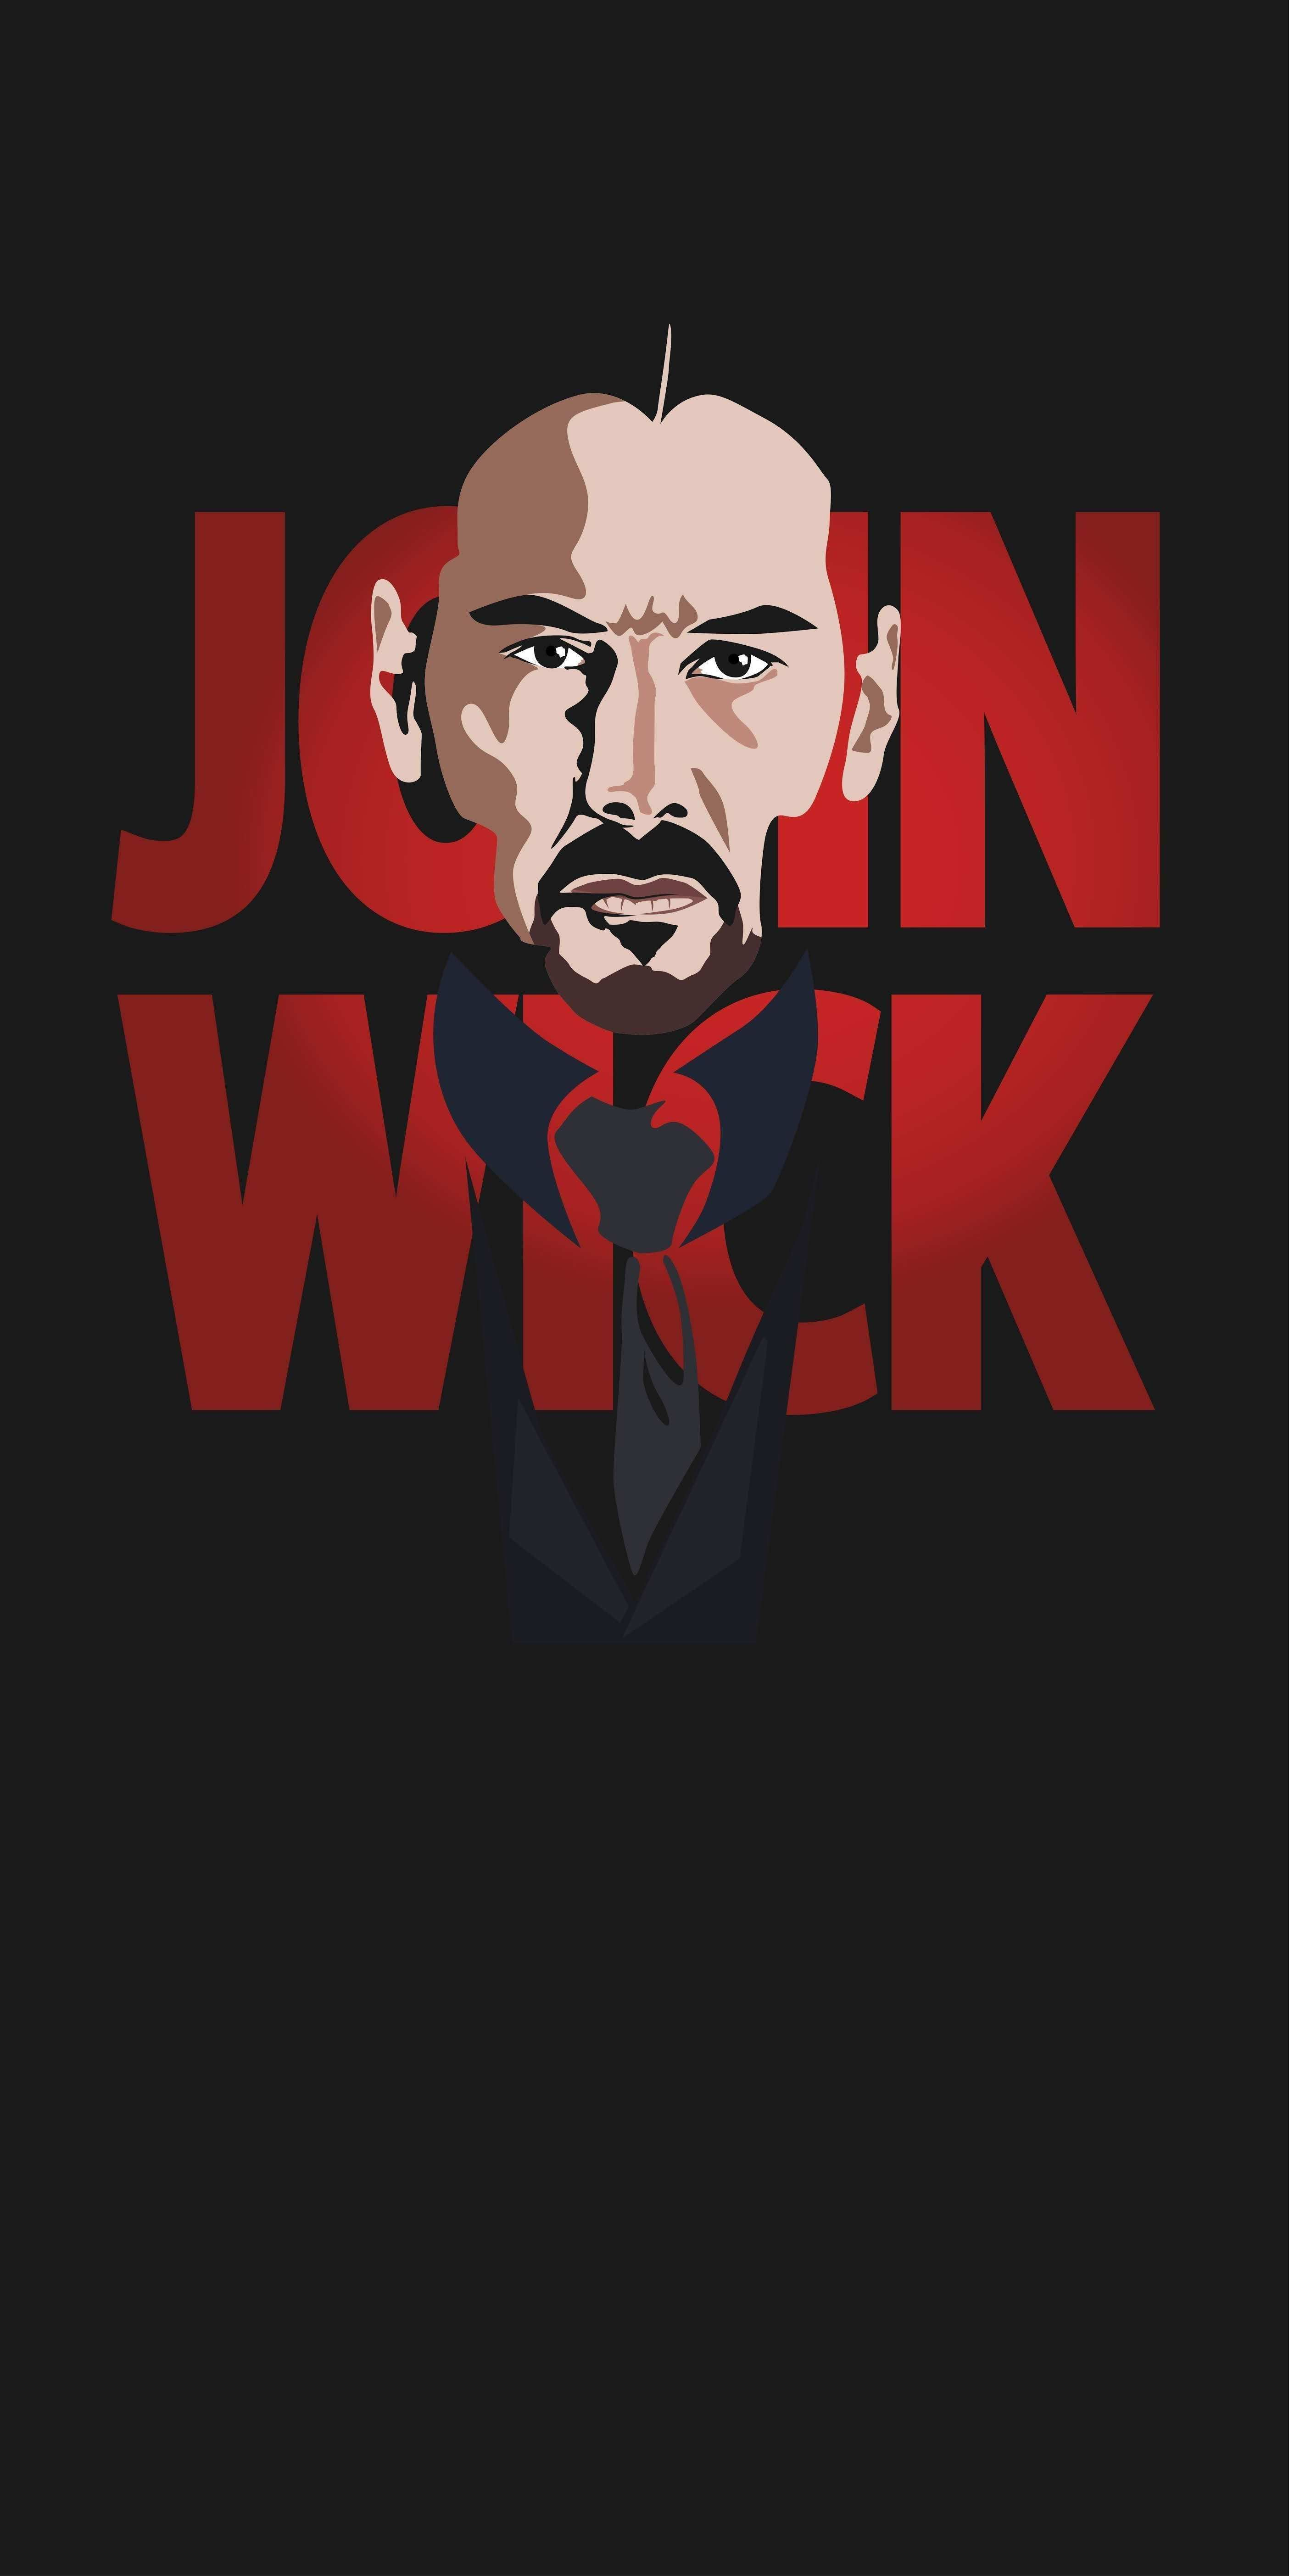 Pin By Santi Sasmitha On Motion Design John Wick Hd Iphone Wallpaper Movie Keanu Reeves John Wick